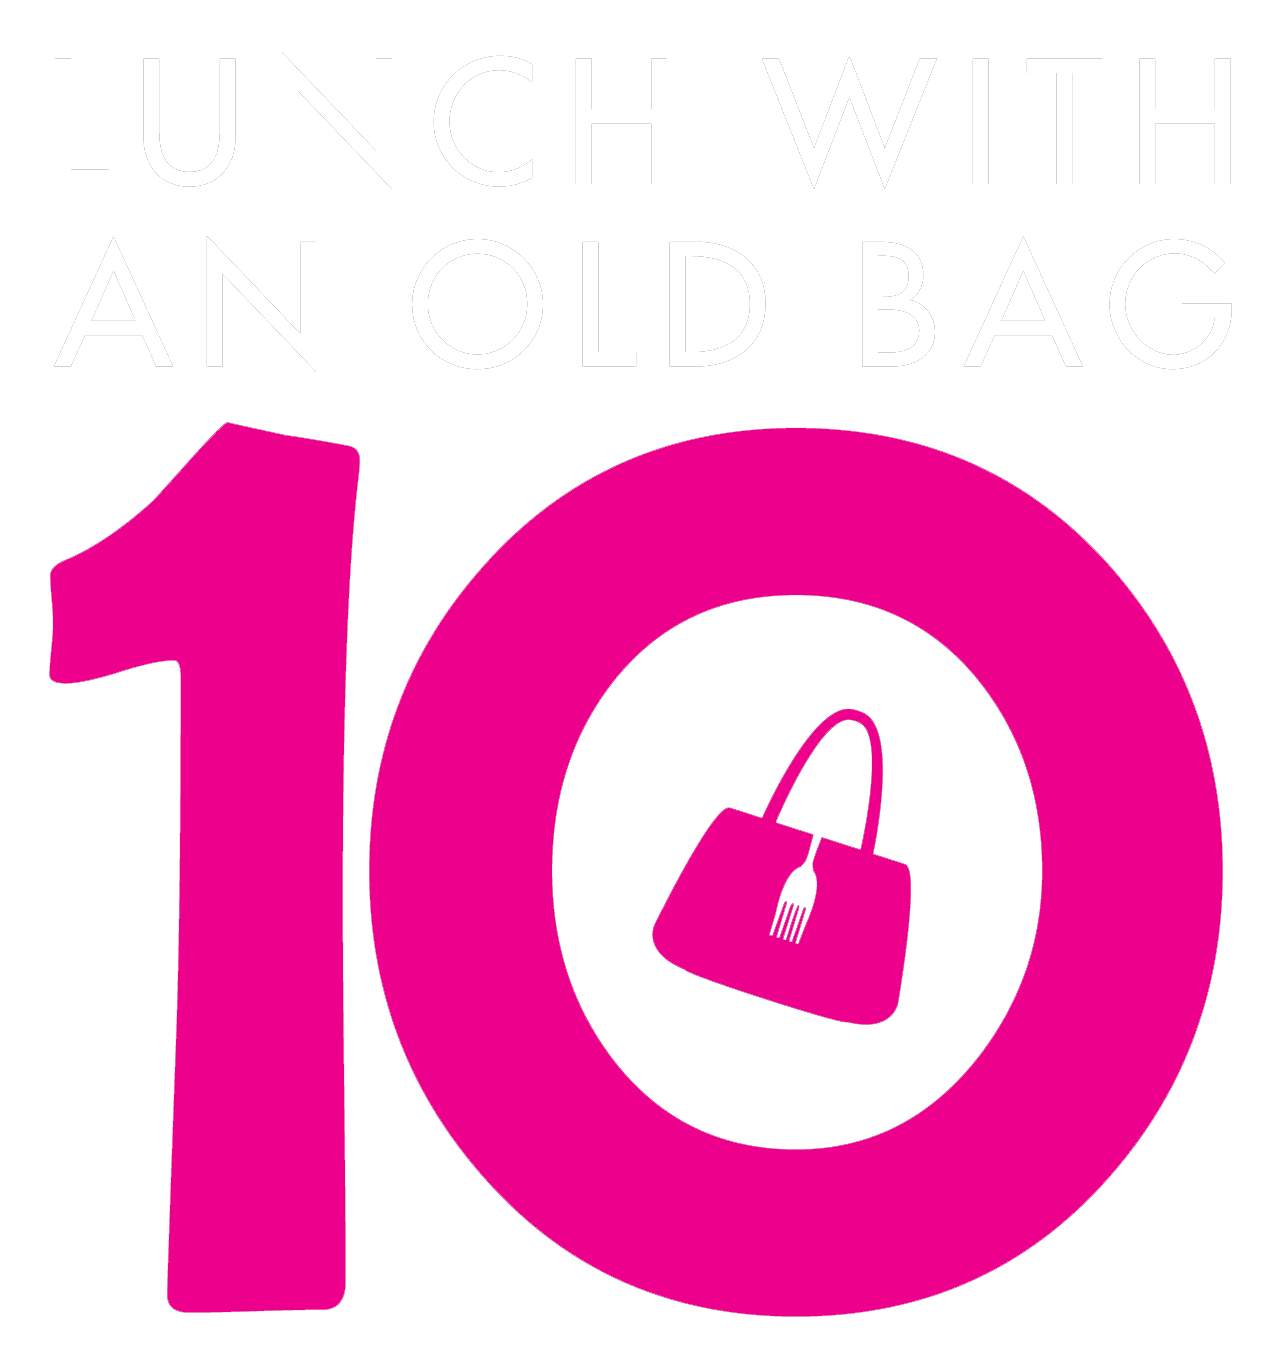 Fundraising clipart lunch money. With an old bag